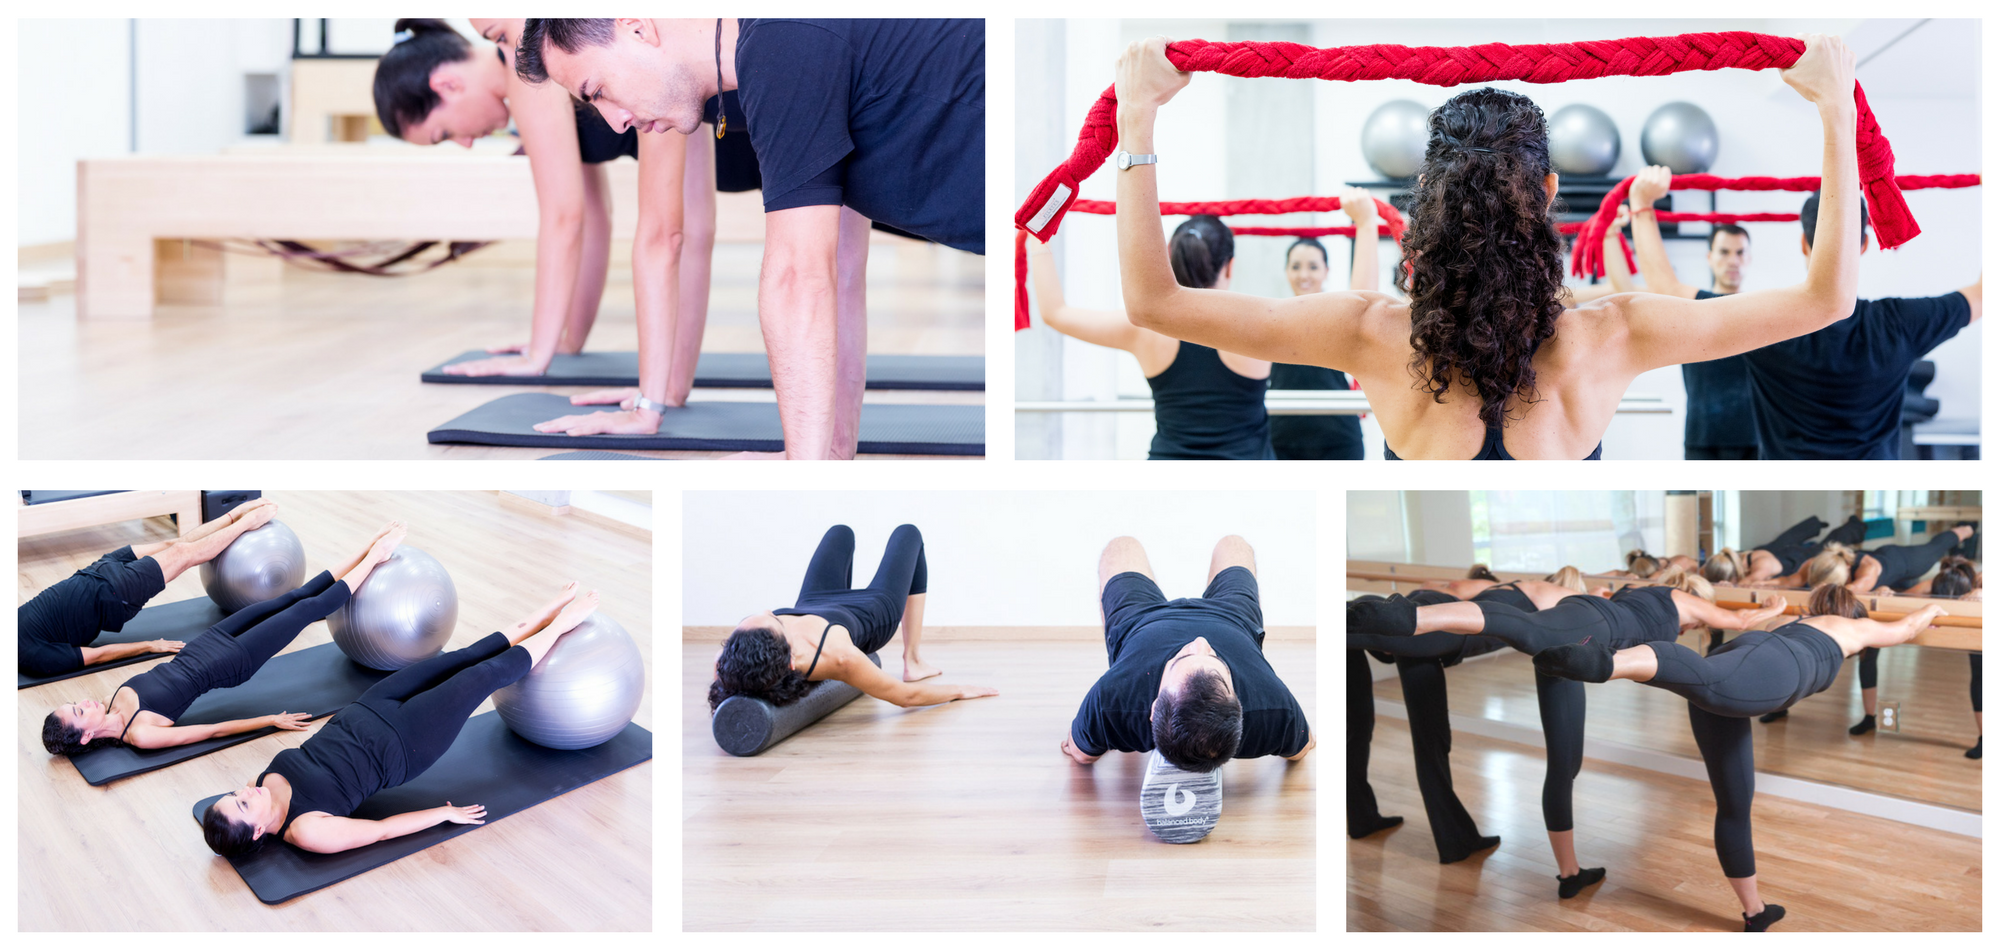 Clases grupales pilates cancun